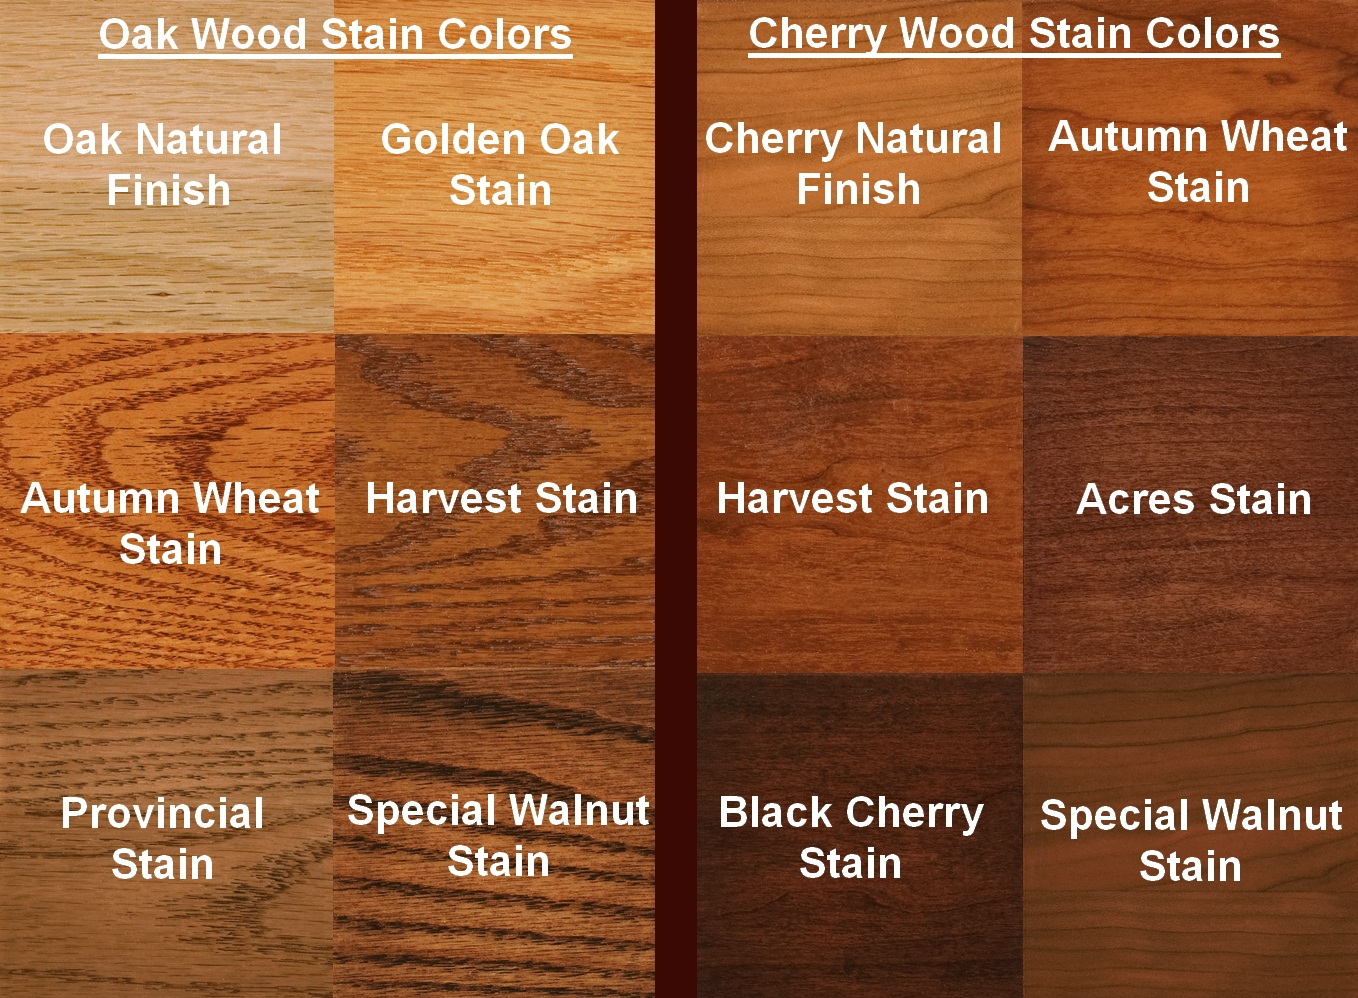 Oak Wood Stain Colors